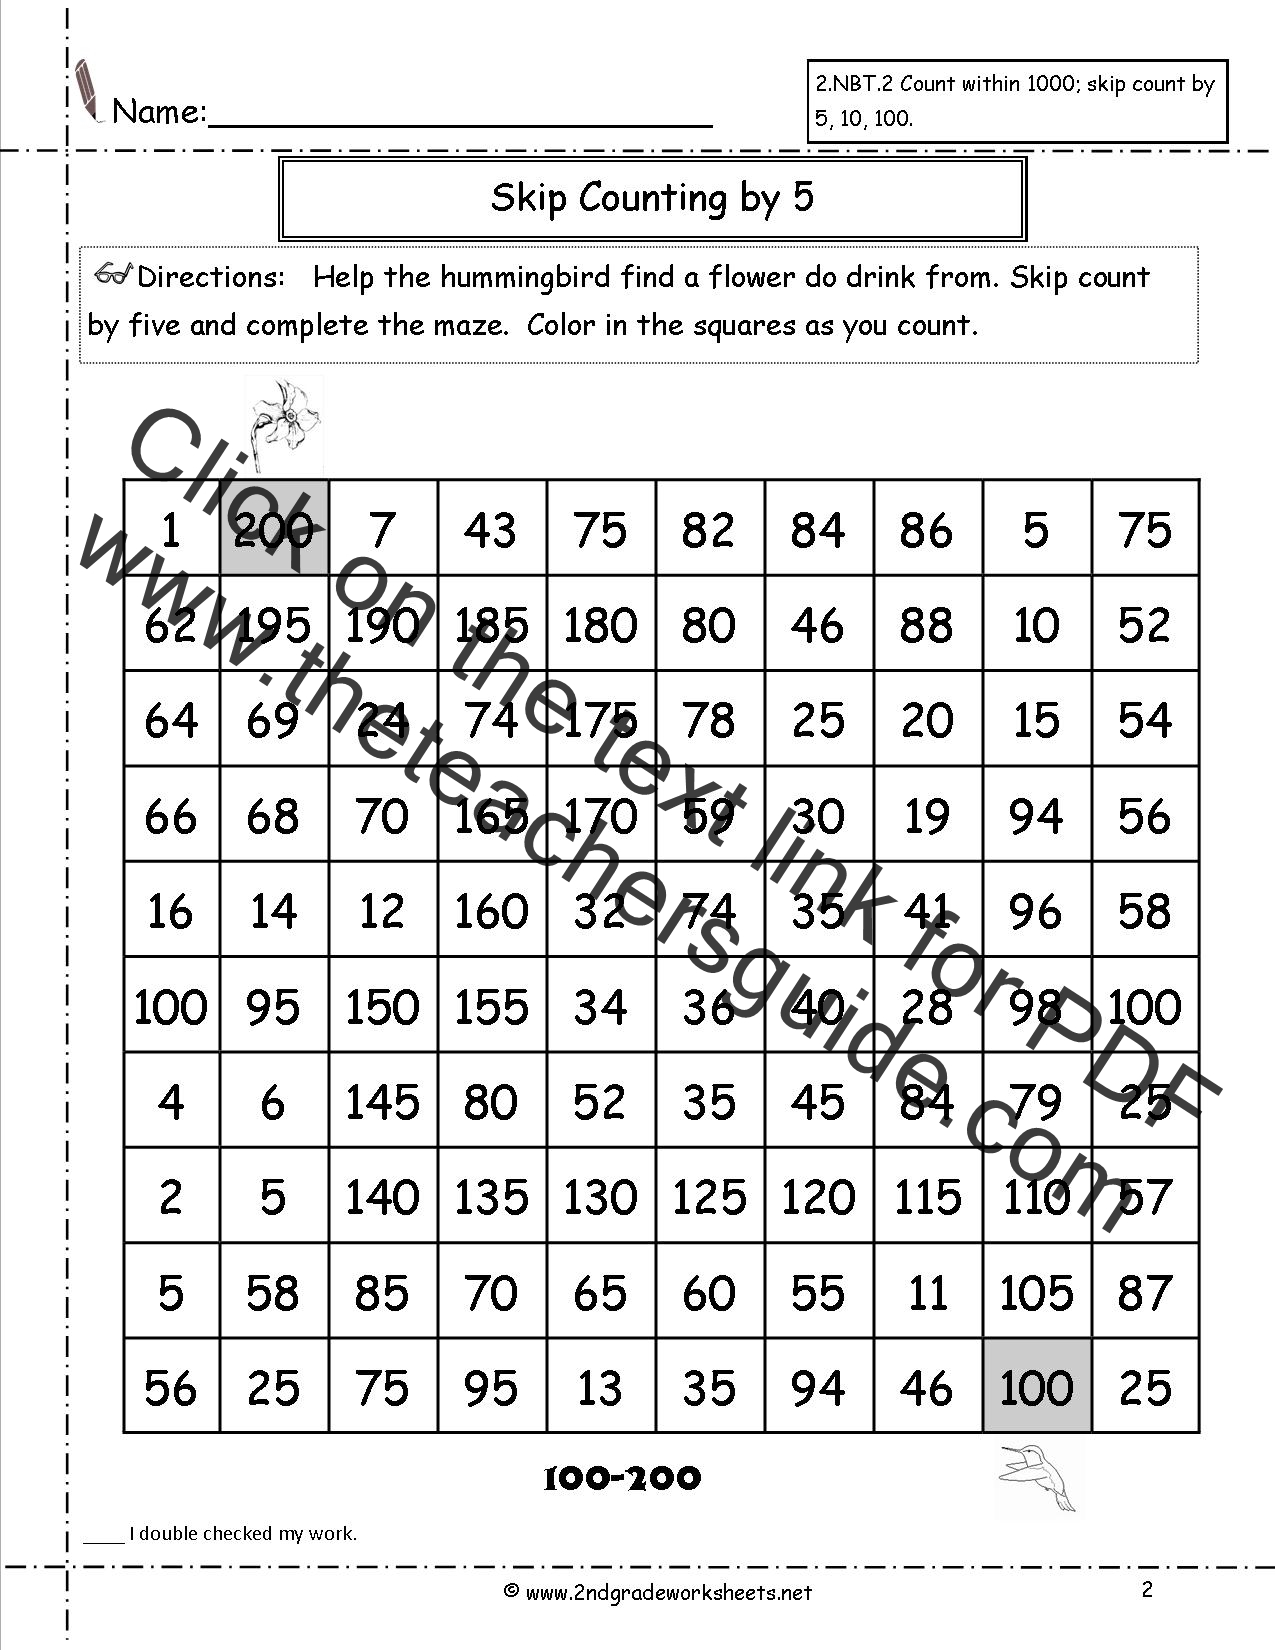 Worksheets Skip Counting Worksheet free skip counting worksheets count by 5 maze